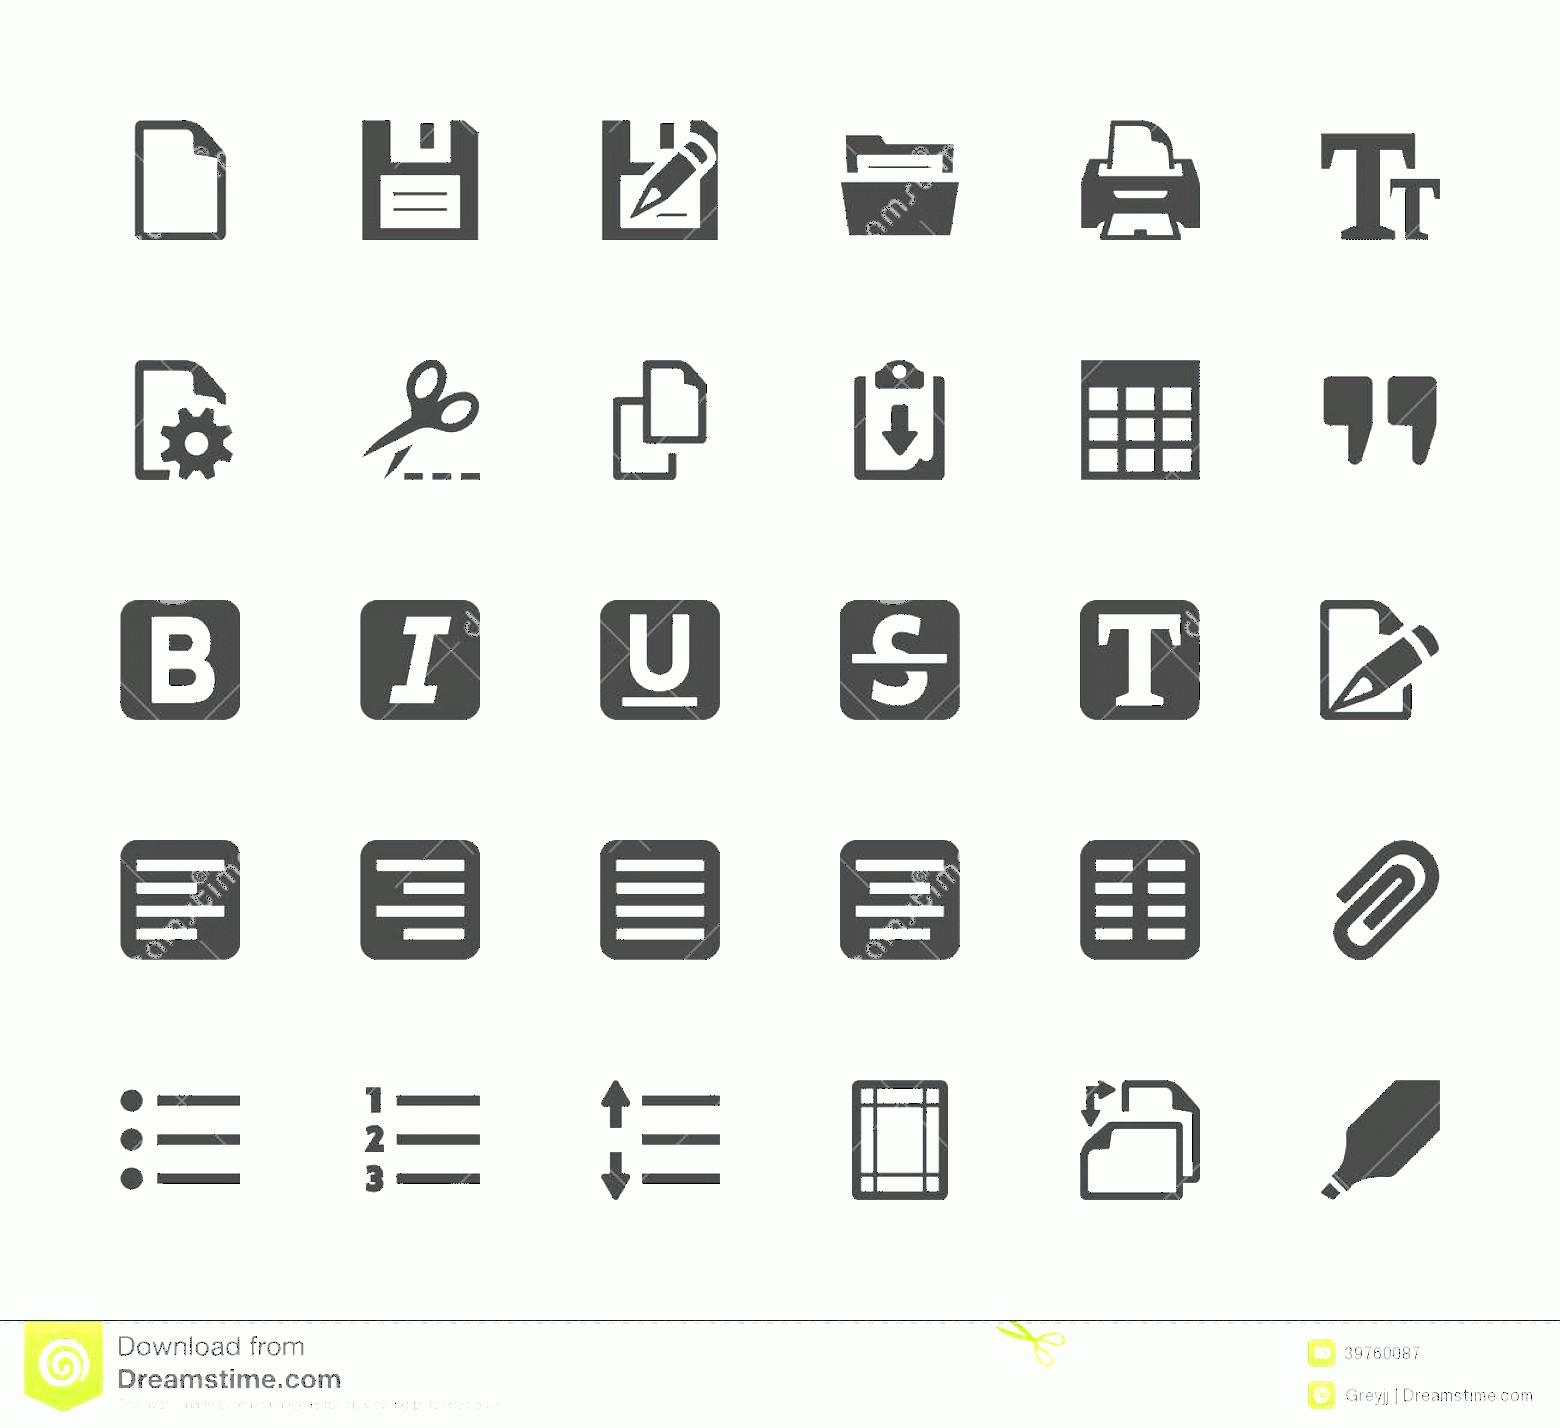 Editors Symbols In Vector: Royalty Free Stock Photography Vector Text Editor Icons Set Mini Image